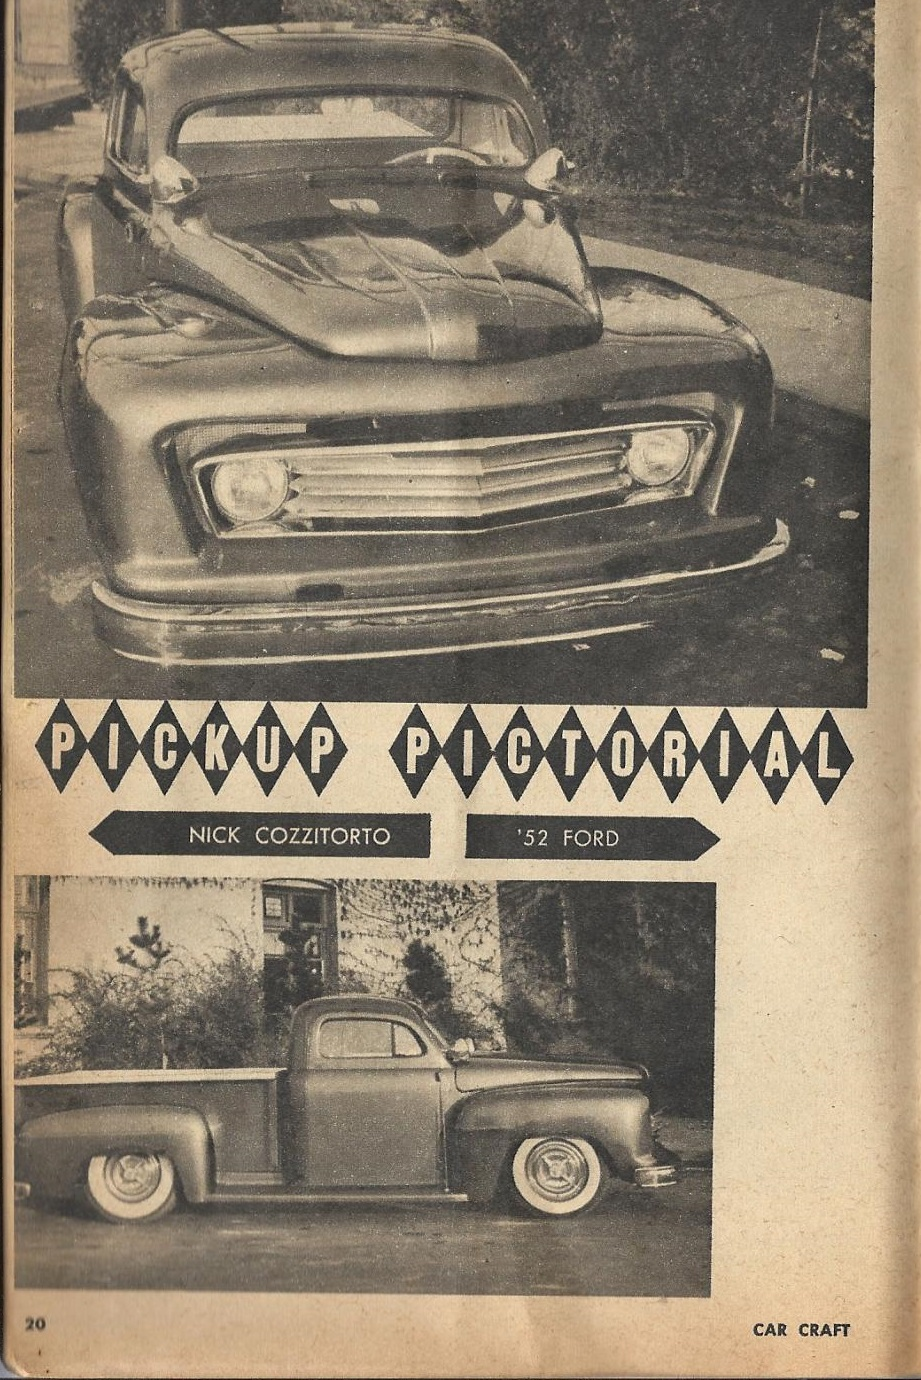 Car Craft - Special Pick Up June 1959 - Pick up Pictorial 2016